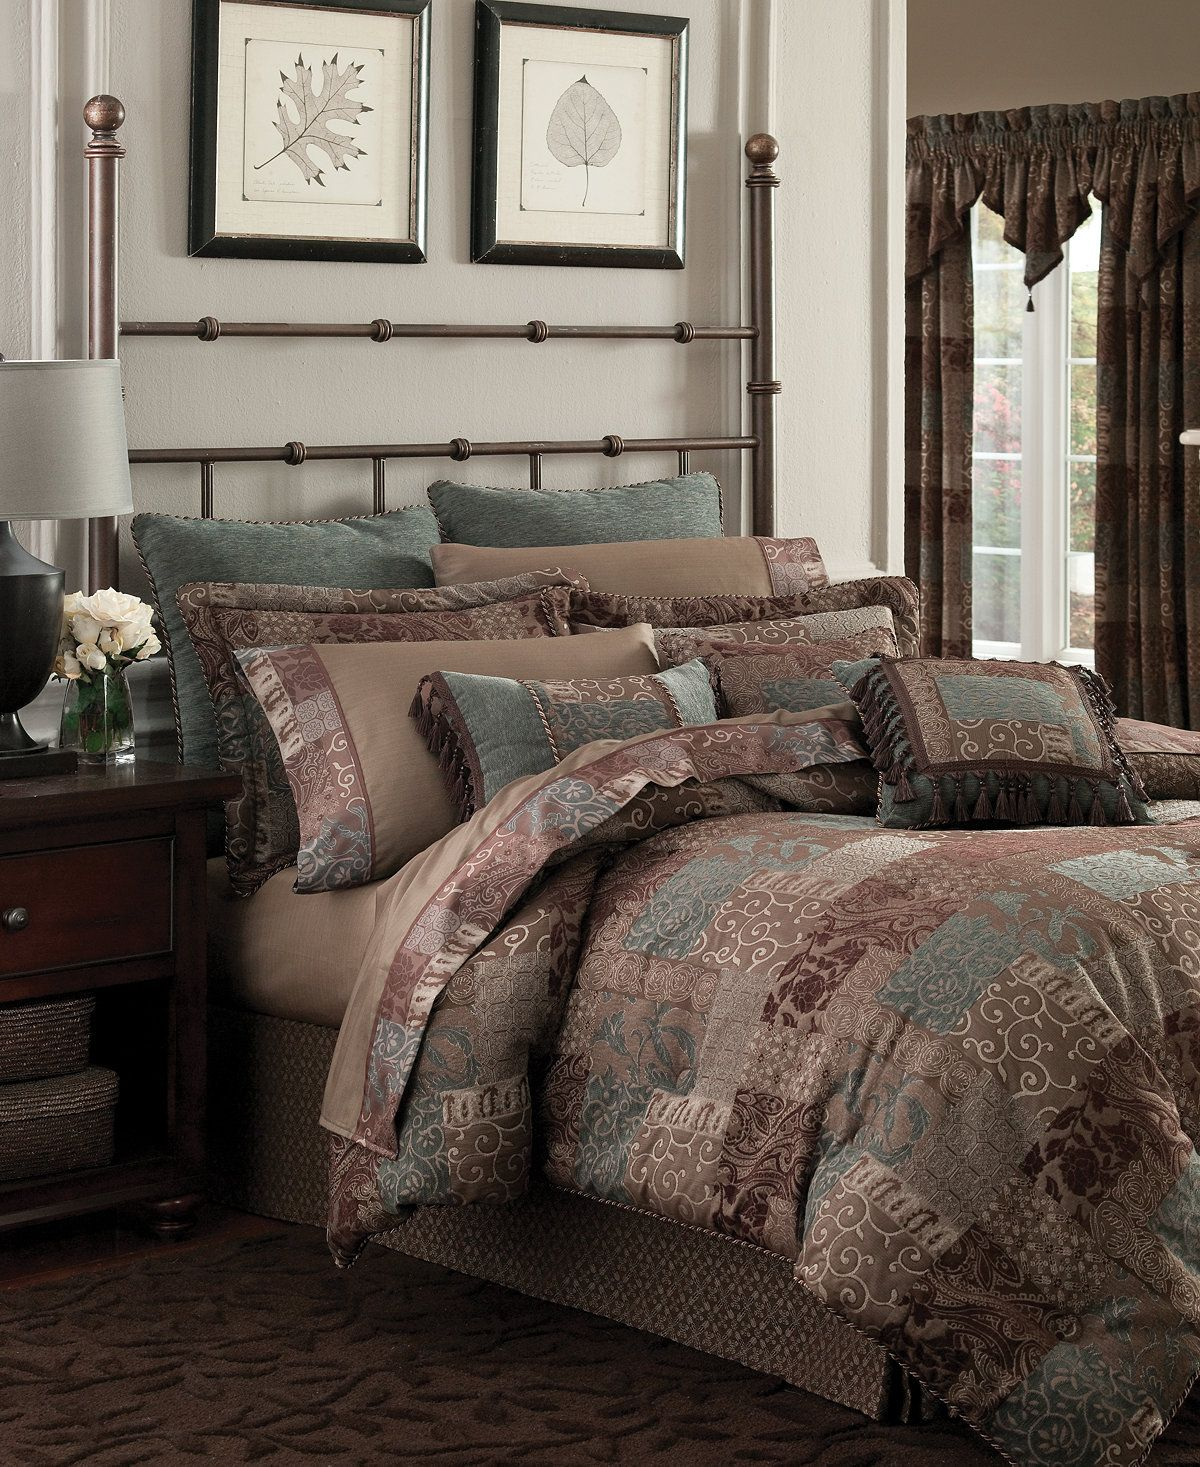 set and brown size beddingbrown comforter kinge bedding sets blue beddingking king dark co beddingdark teal icmultimedia setsbrown